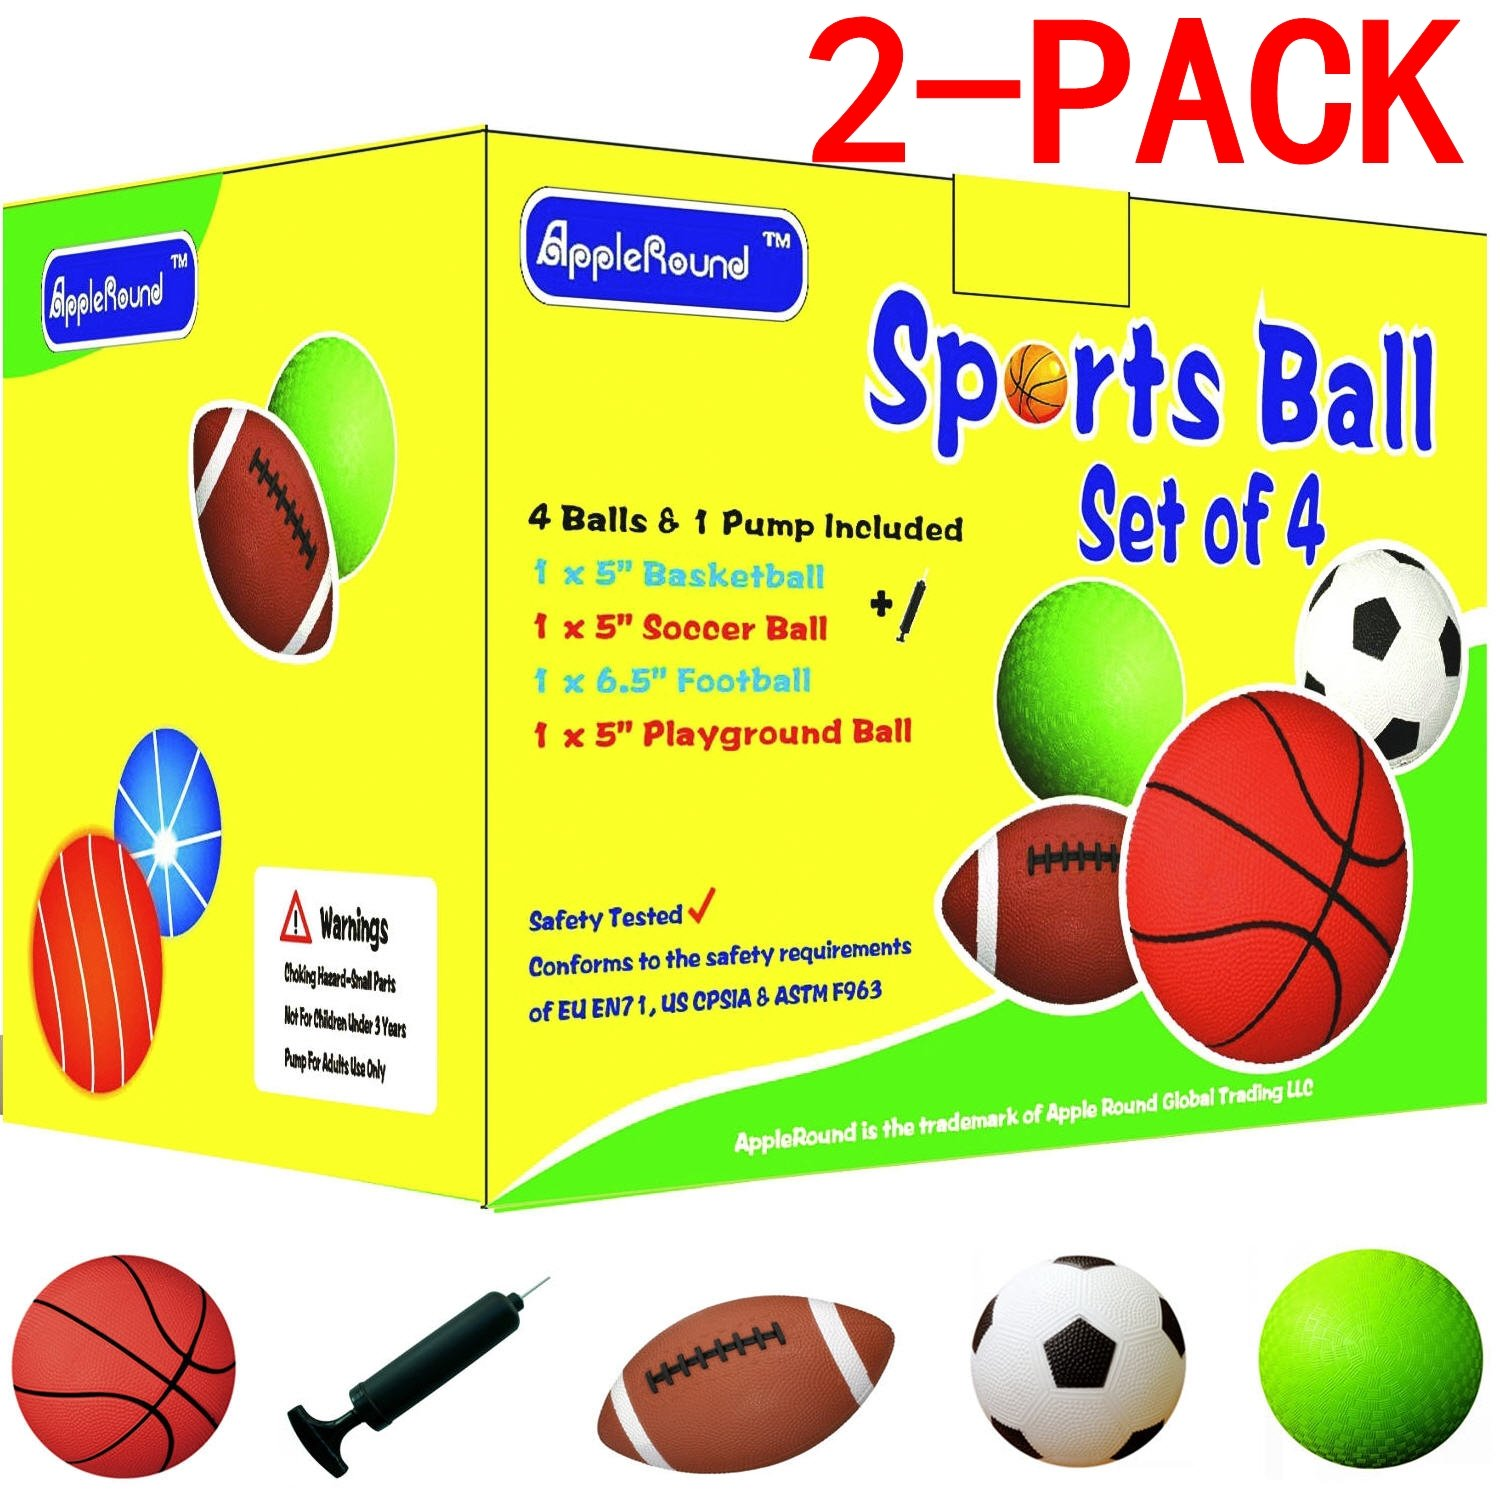 """AppleRound 2-Pack: Each Pack Includes 4 Sports Balls and 1 Pump, 5"""" Soccer Ball, 5"""" Basketball, 5"""" Playground Ball, 6.5"""" Football"""